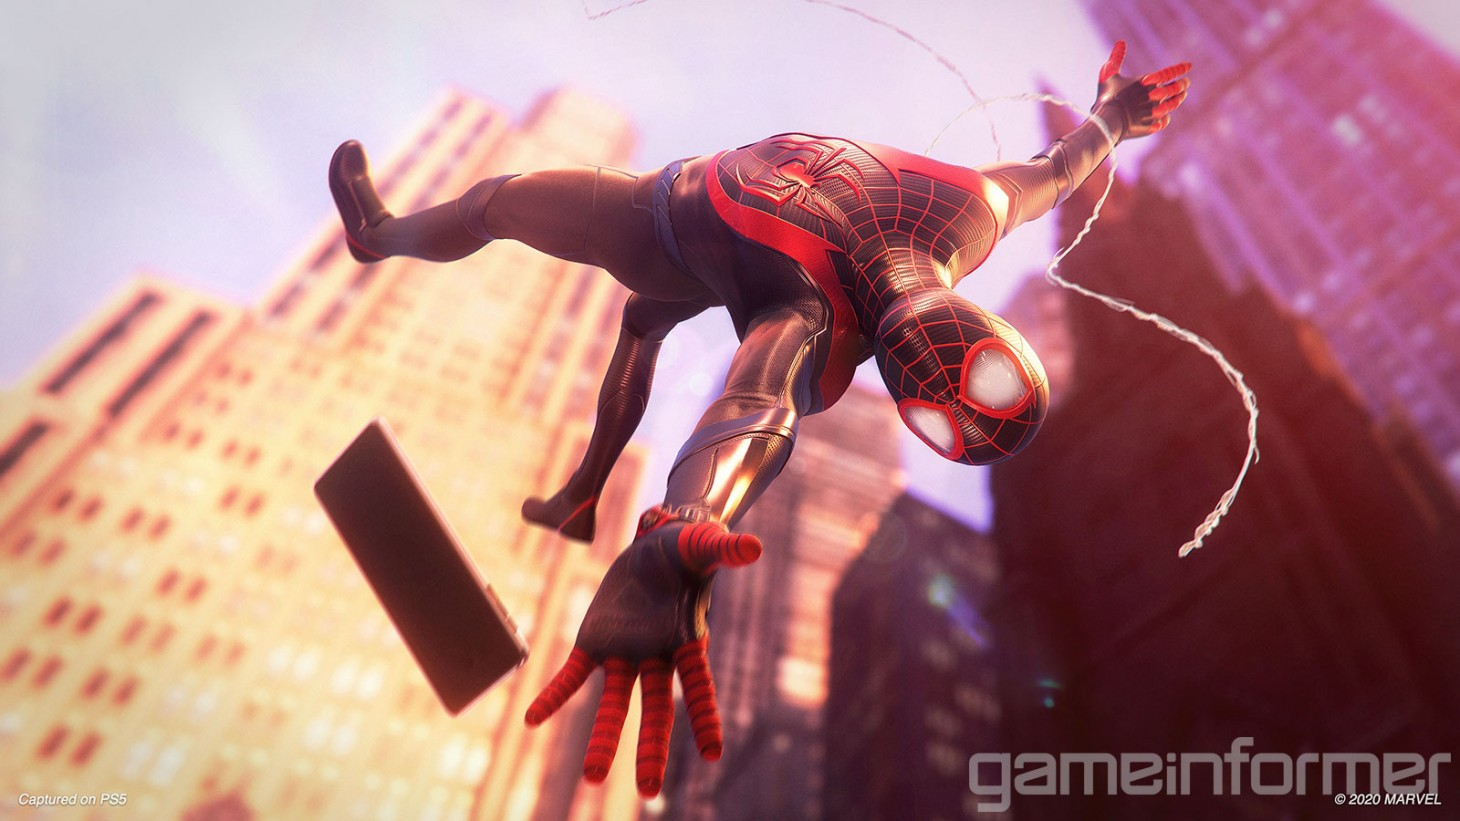 Miles Morales Stars In One Of The Ps5'S Biggest Launch Titles. (Gameinformer)